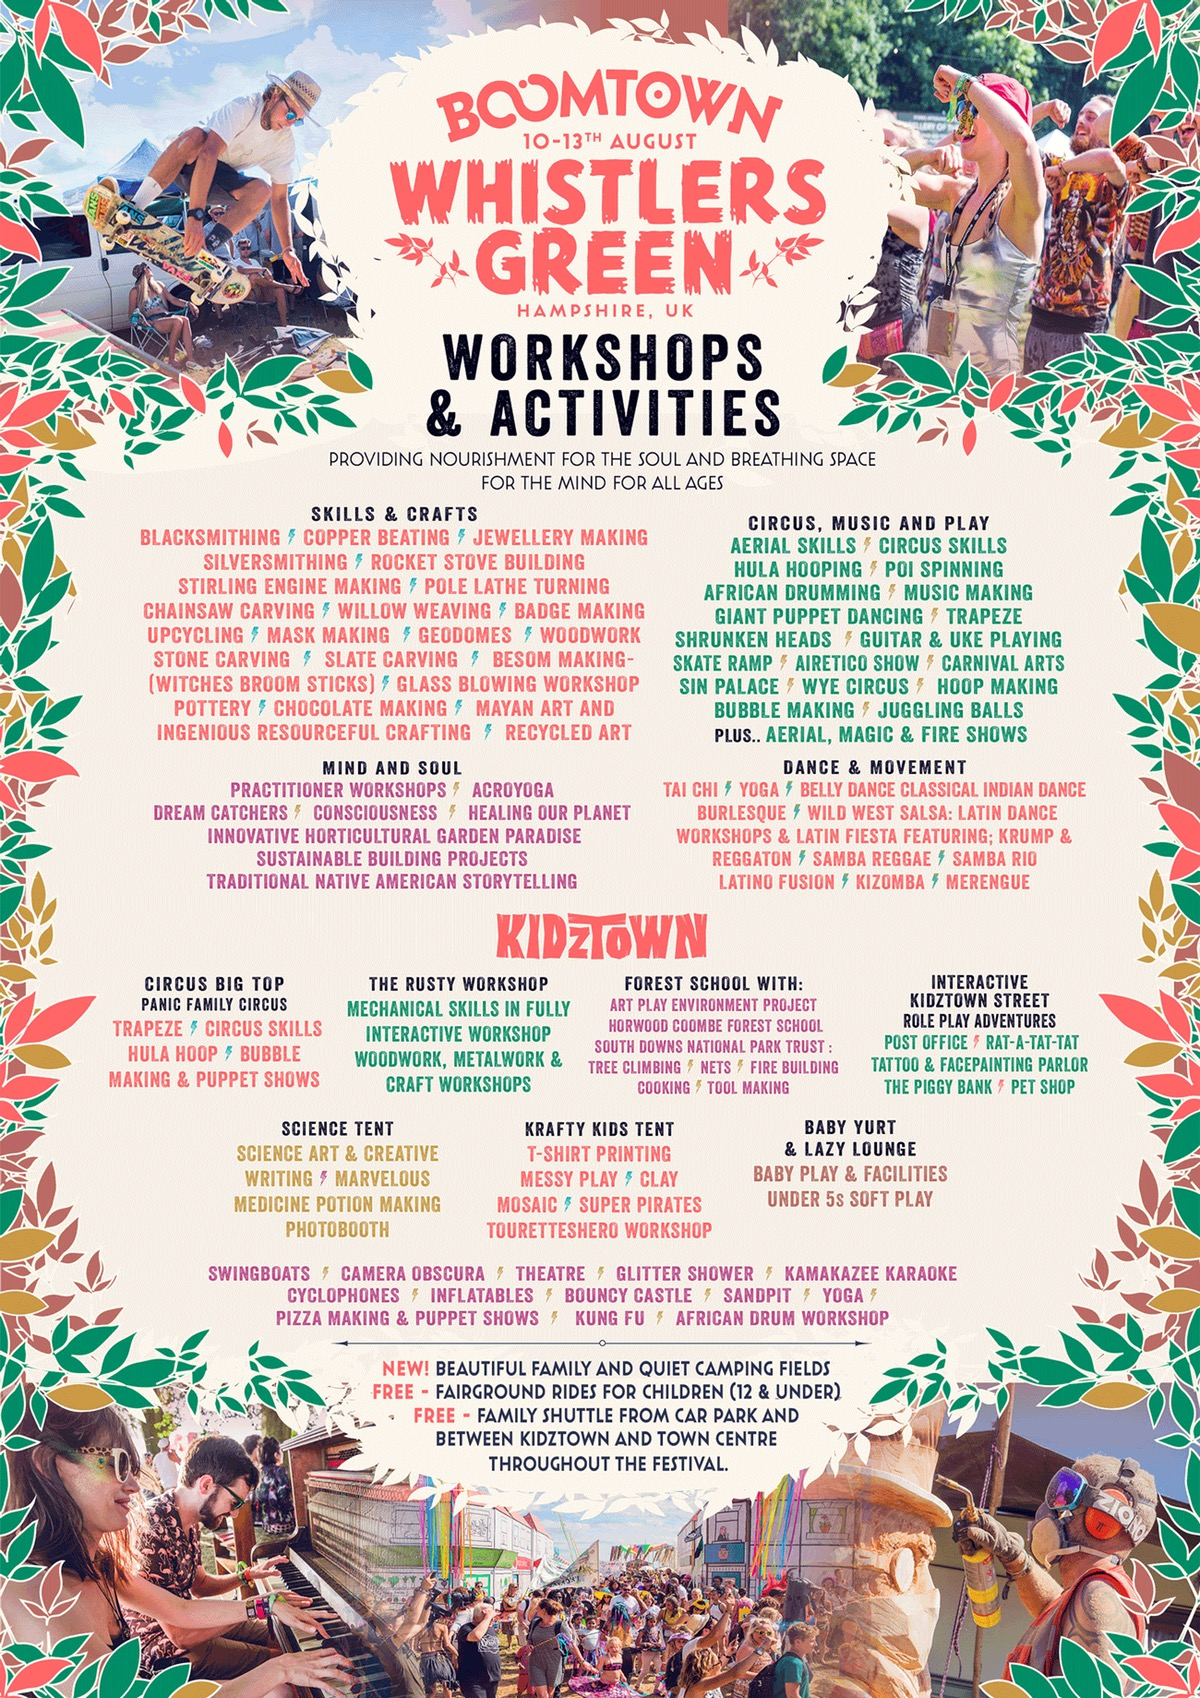 Boomtown-whistlers-green-workshops